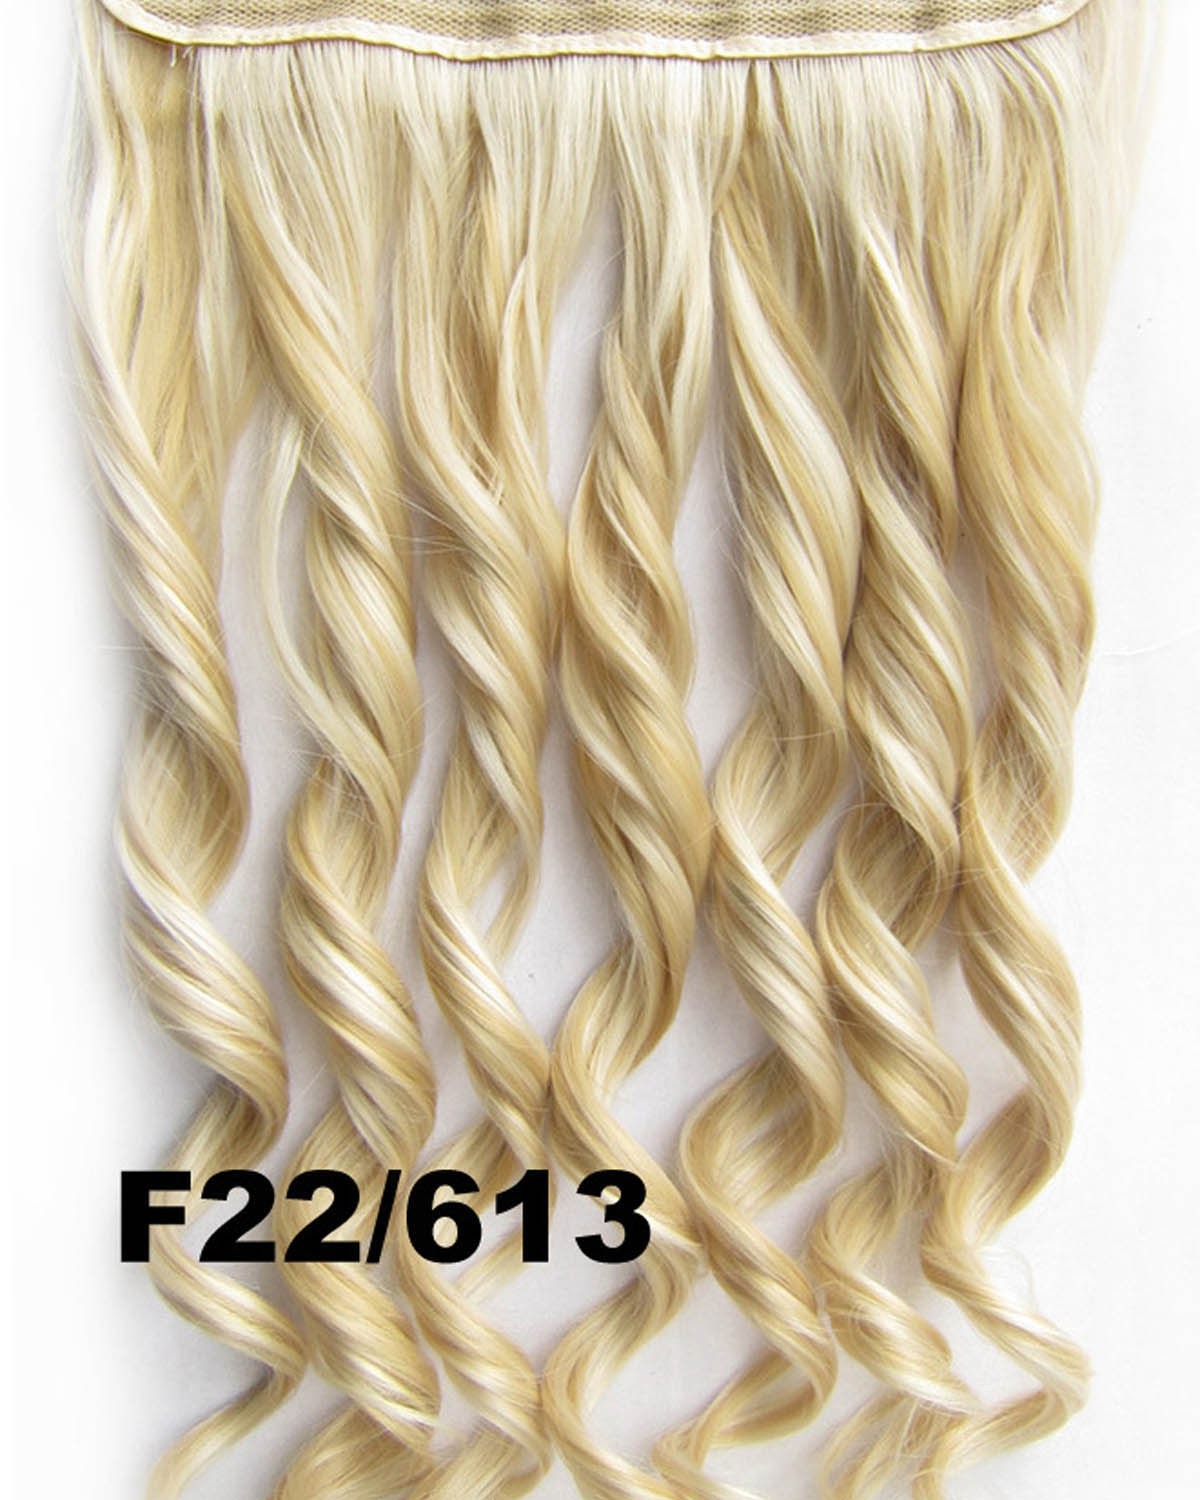 24 Inch Lady Neat and Tidy Body Wave Curly Long One Piece 5 Clips Clip in Synthetic Hair Extension F22/613